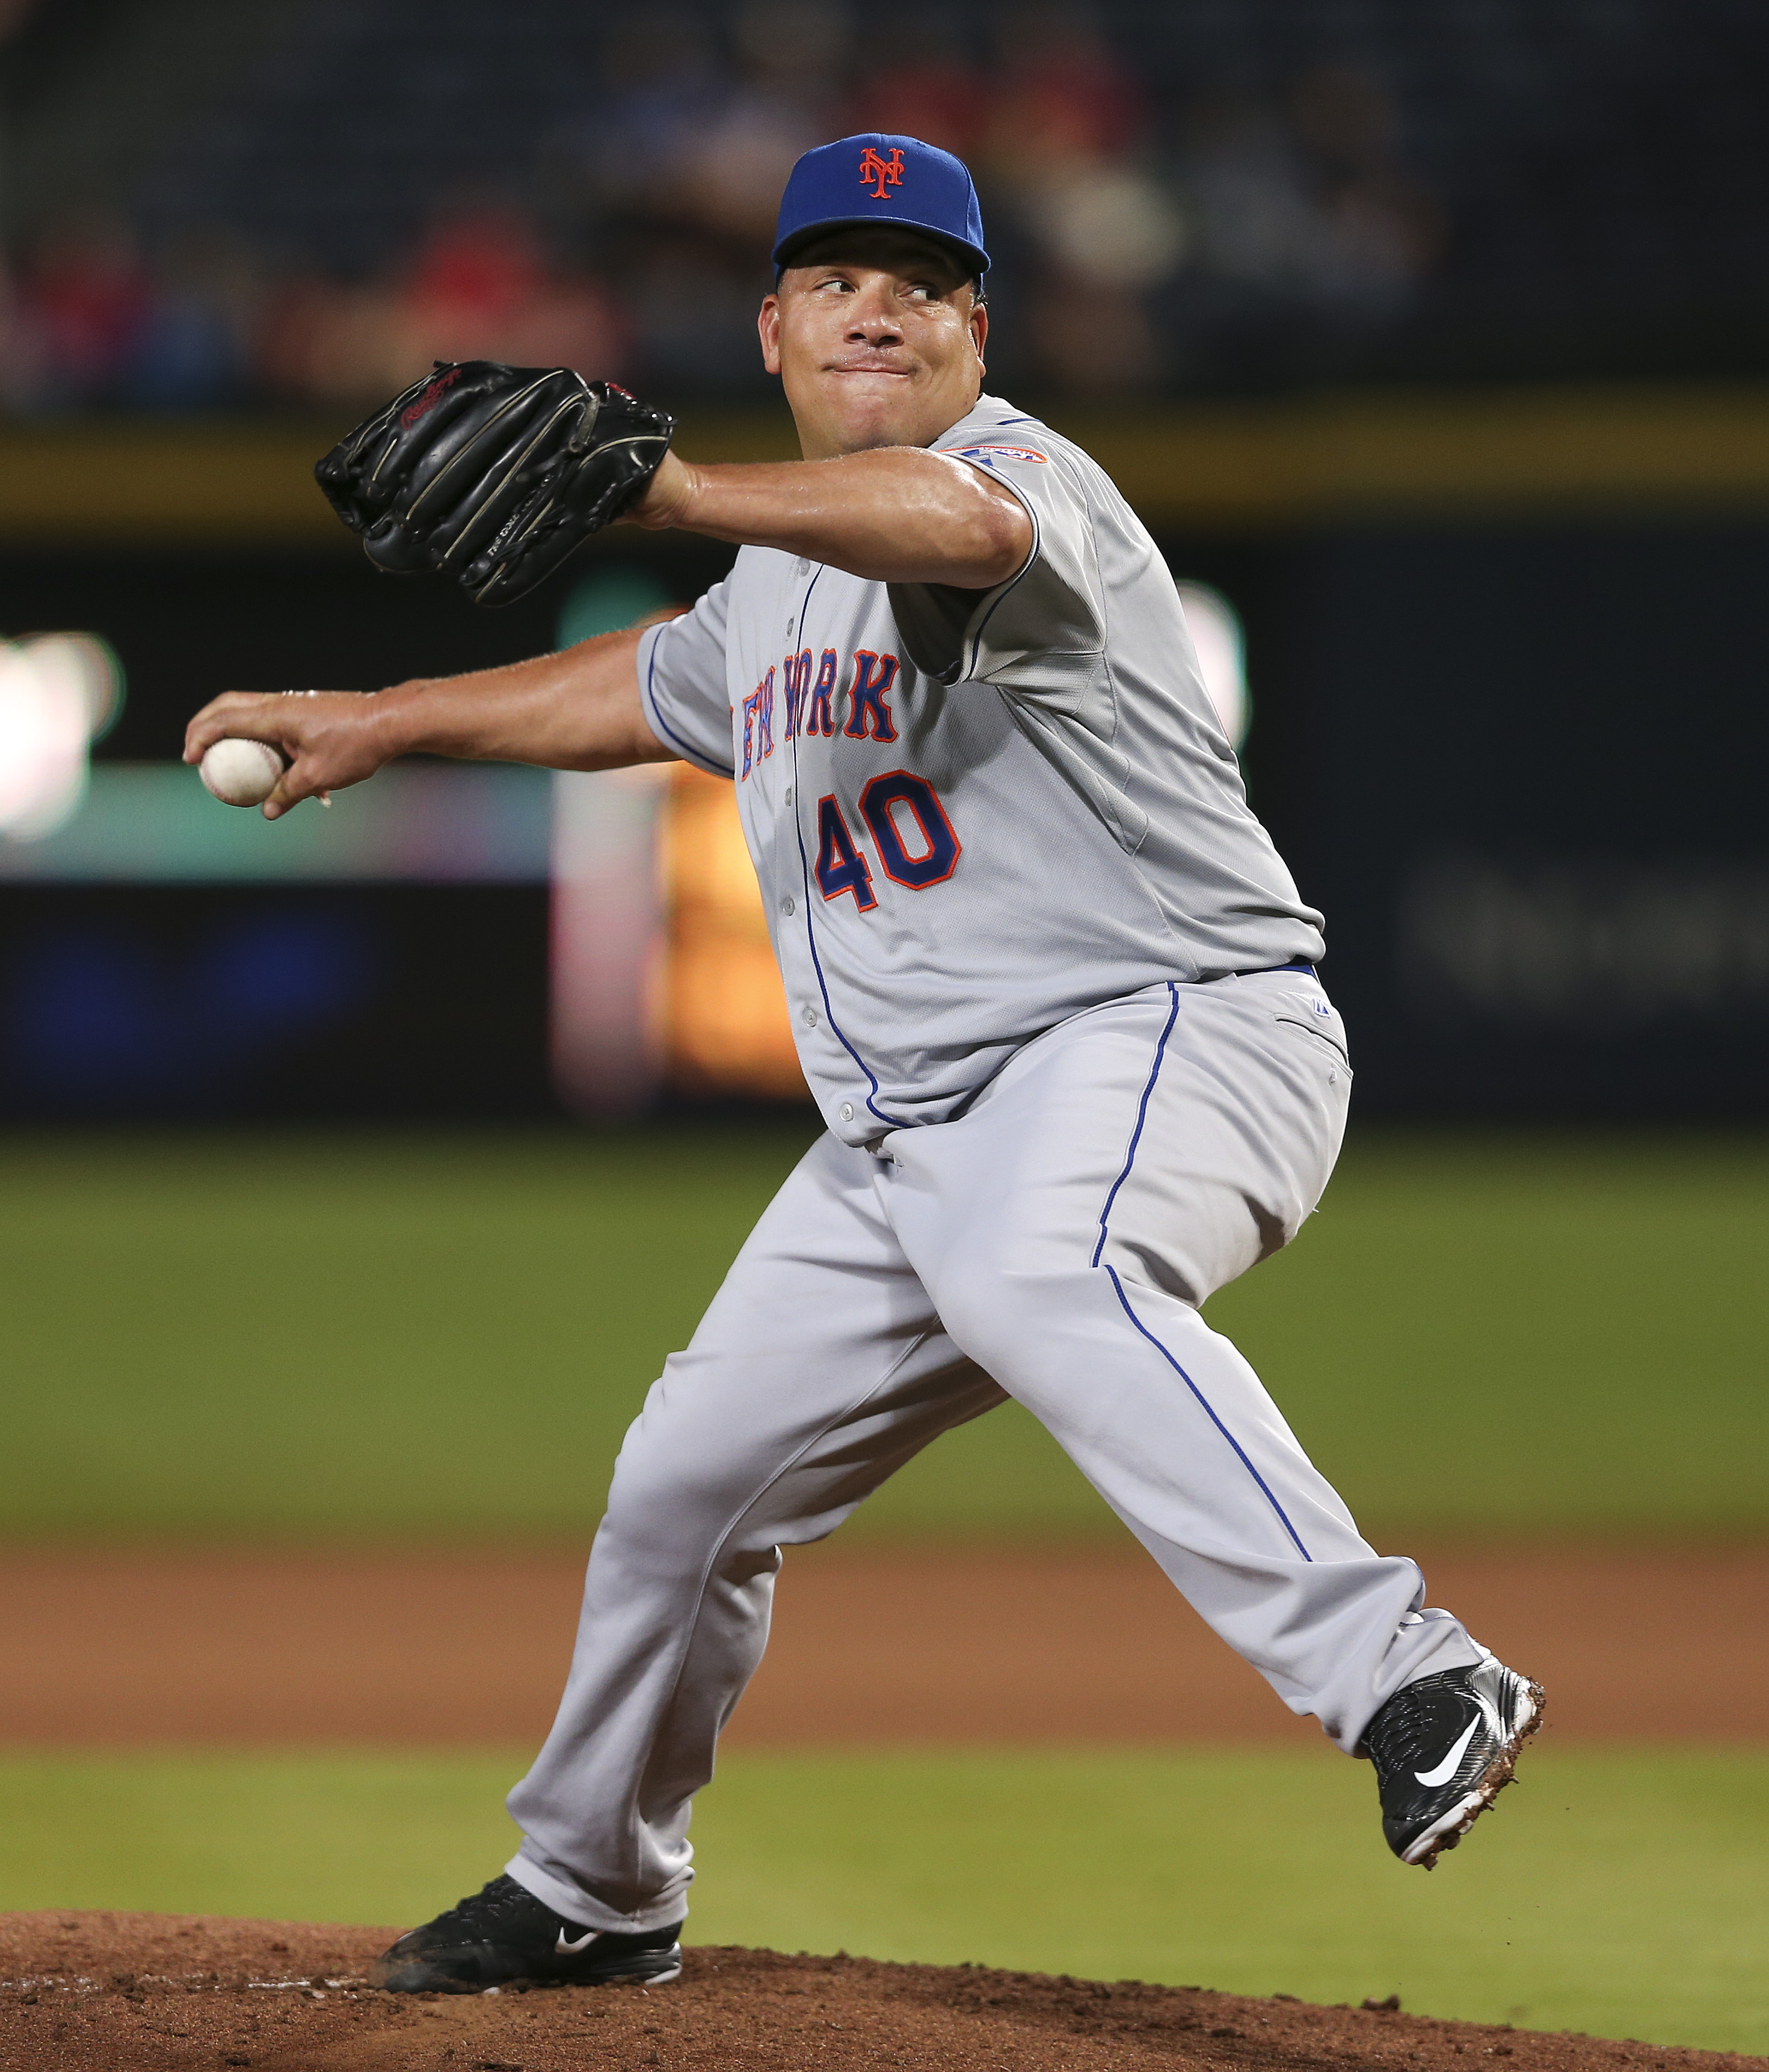 New York Mets starting pitcher Bartolo Colon (40) works in the first inning of a baseball game against the Atlanta Braves, Thursday, Sept. 10, 2015, in Atlanta. (AP Photo/John Bazemore)